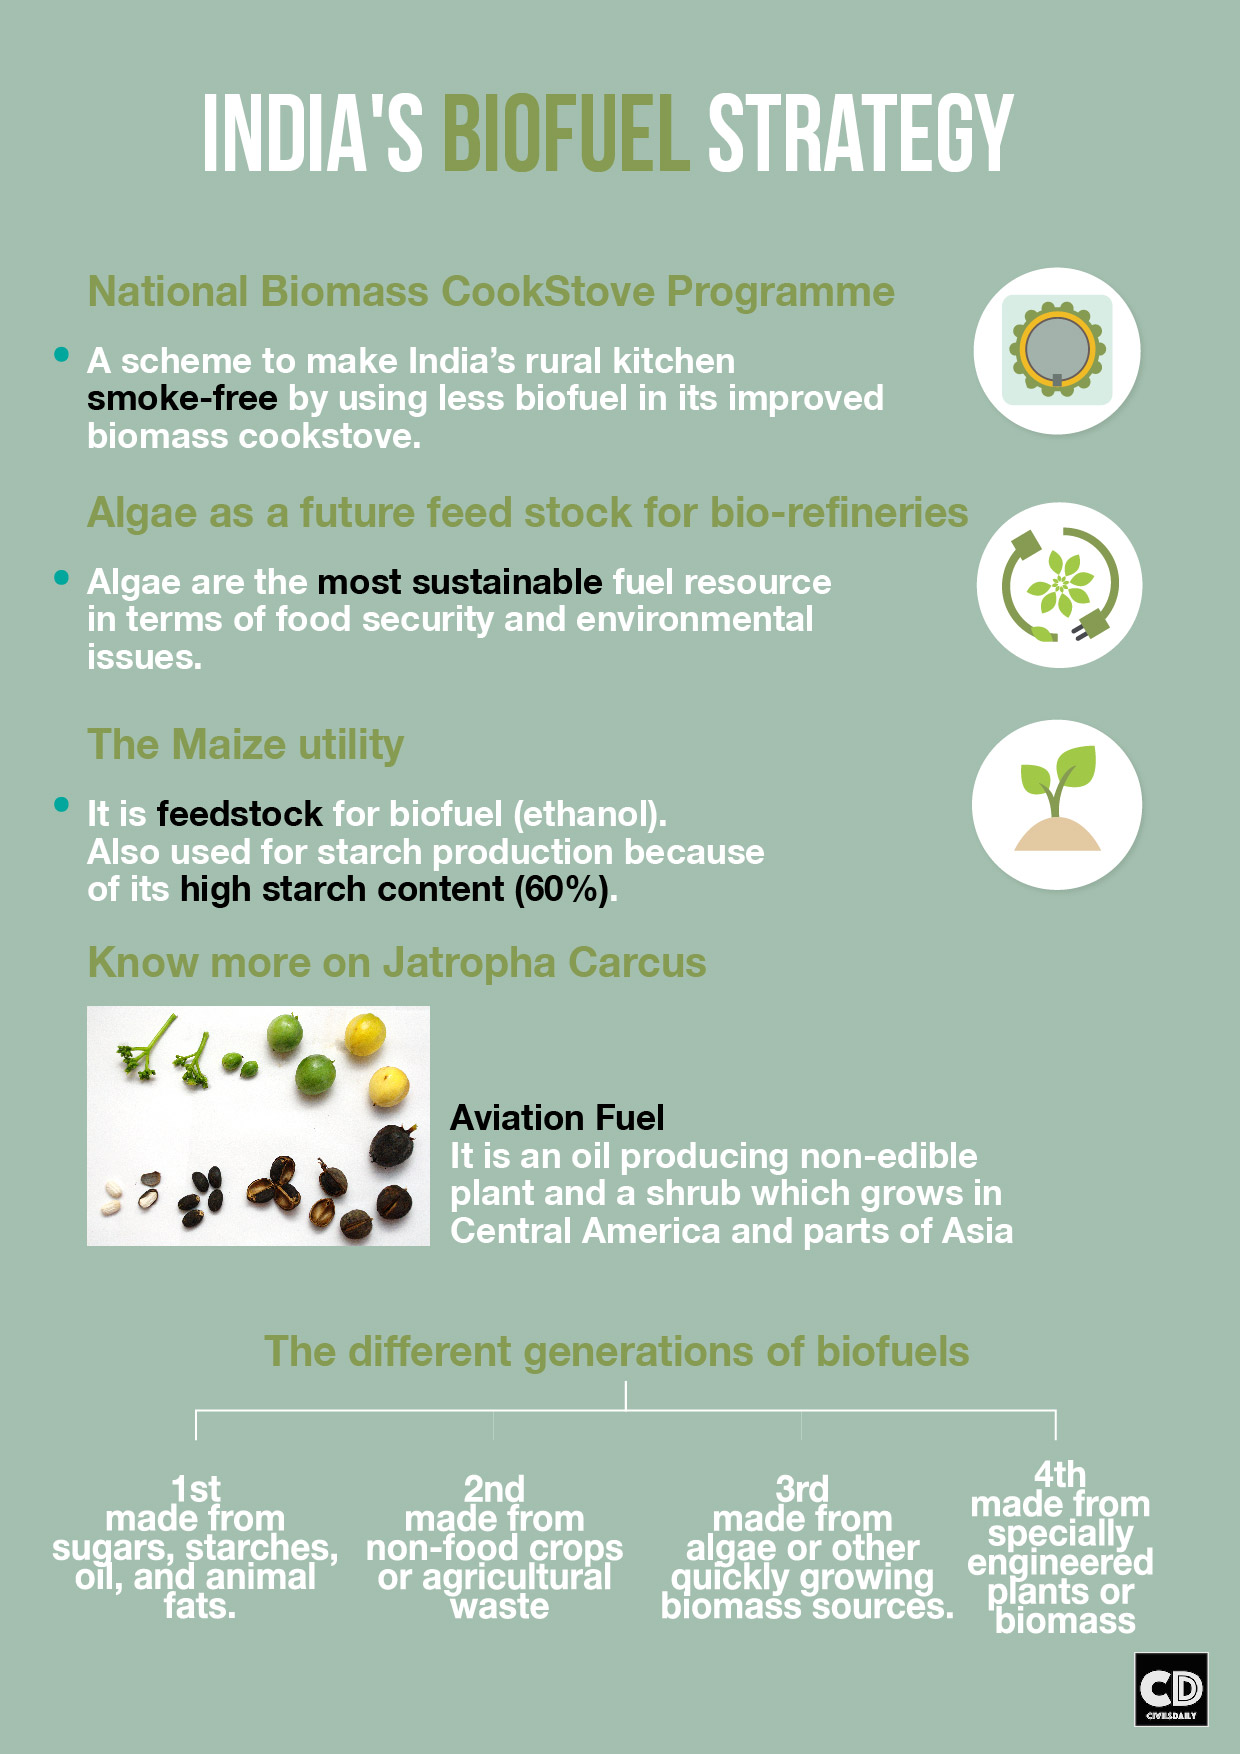 Different types of biofuels